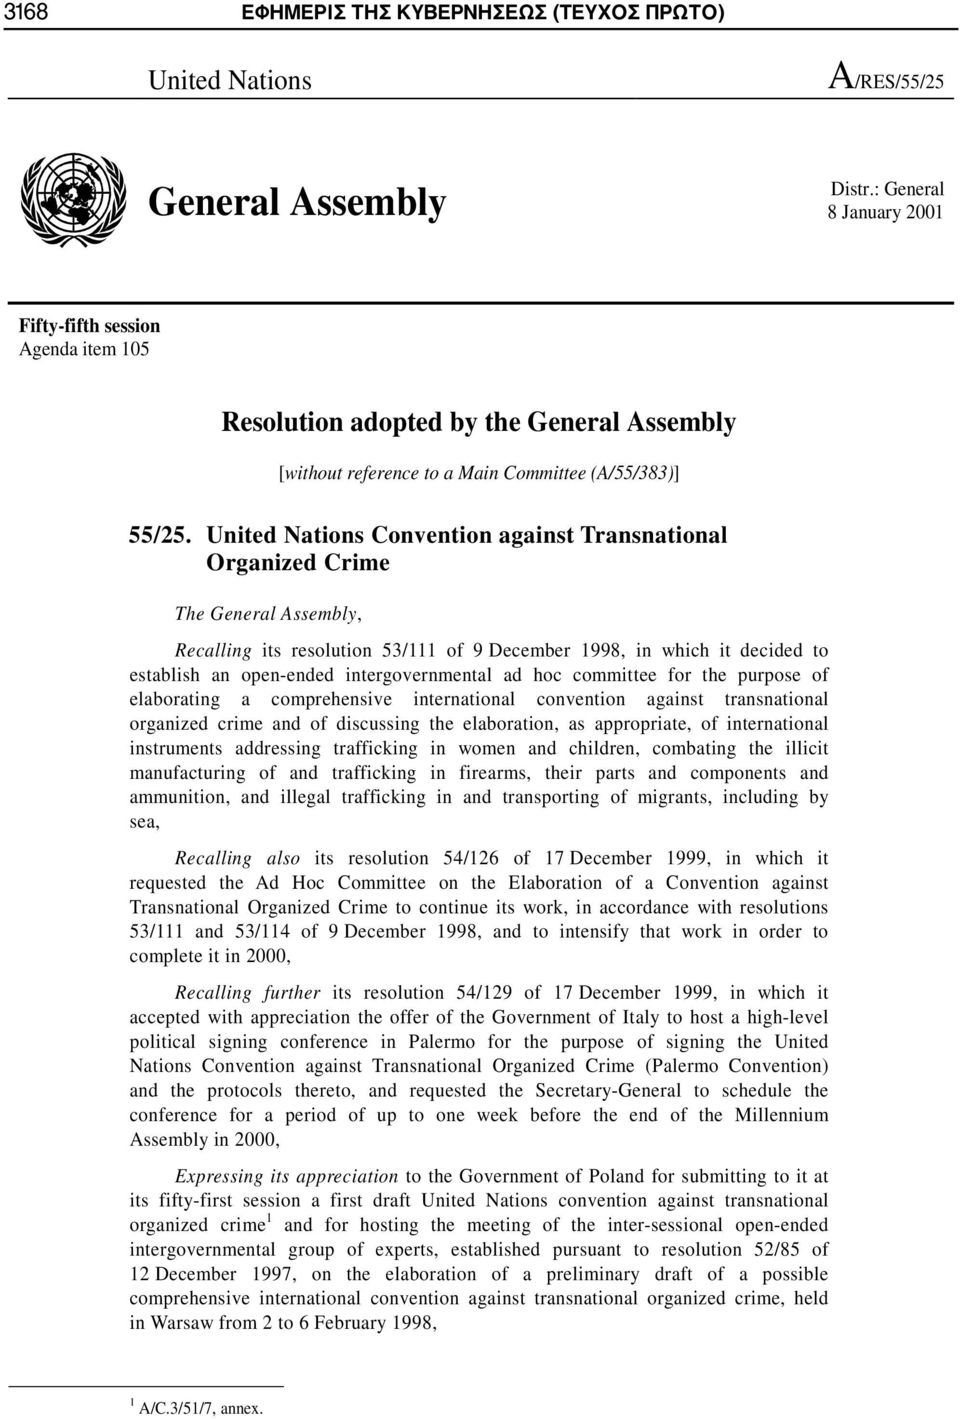 United Nations Convention against Transnational Organized Crime The General Assembly, Recalling its resolution 53/111 of 9 December 1998, in which it decided to establish an open-ended